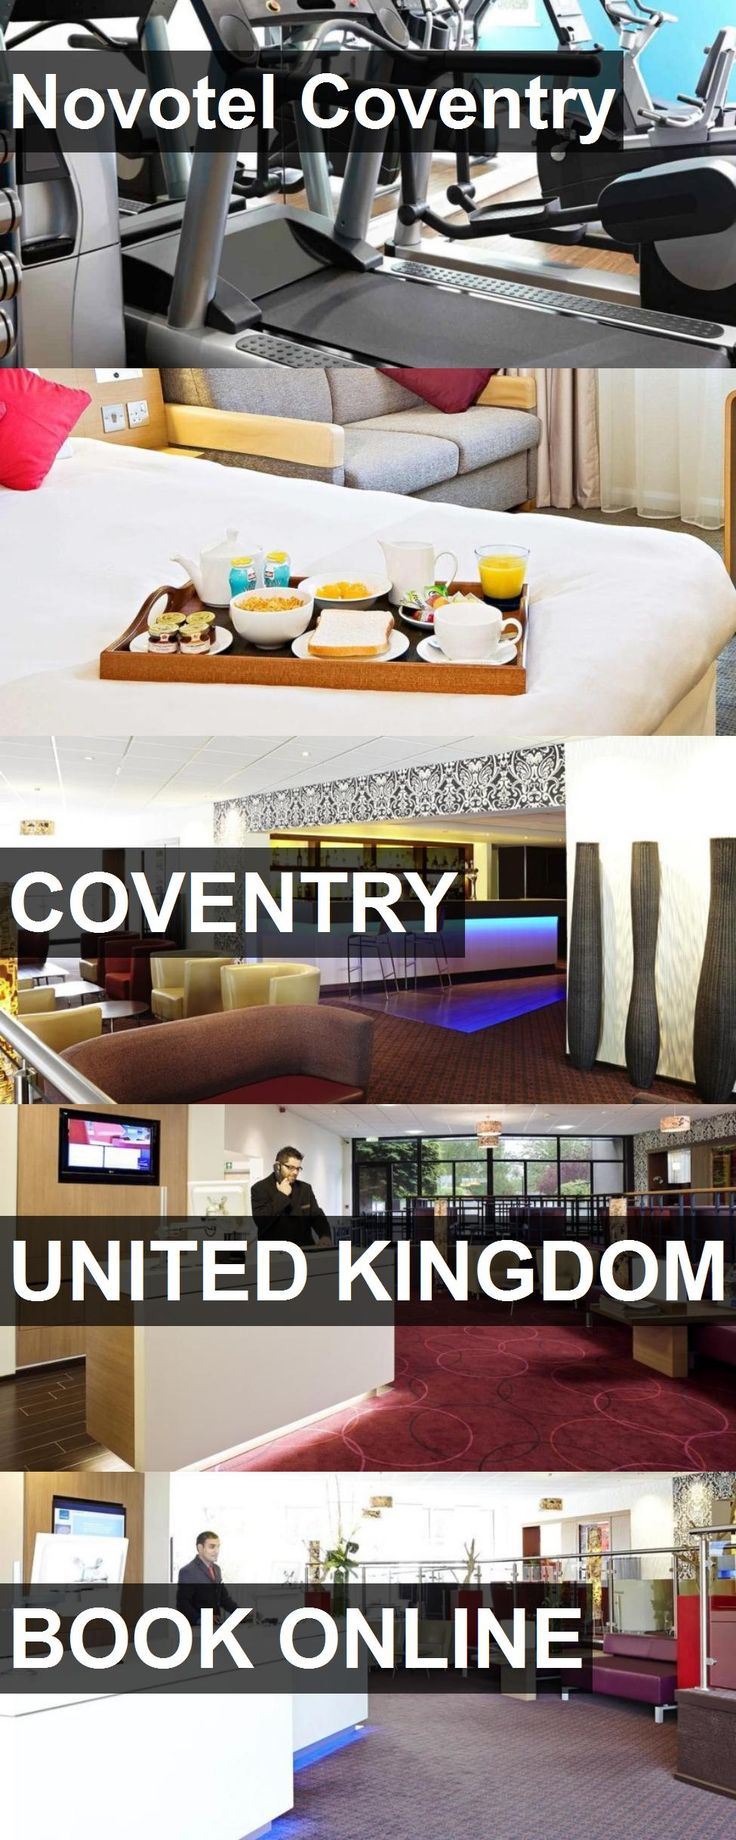 Hotel Novotel Coventry in Coventry, United Kingdom. For more information, photos, reviews and best prices please follow the link. #UnitedKingdom #Coventry #hotel #travel #vacation